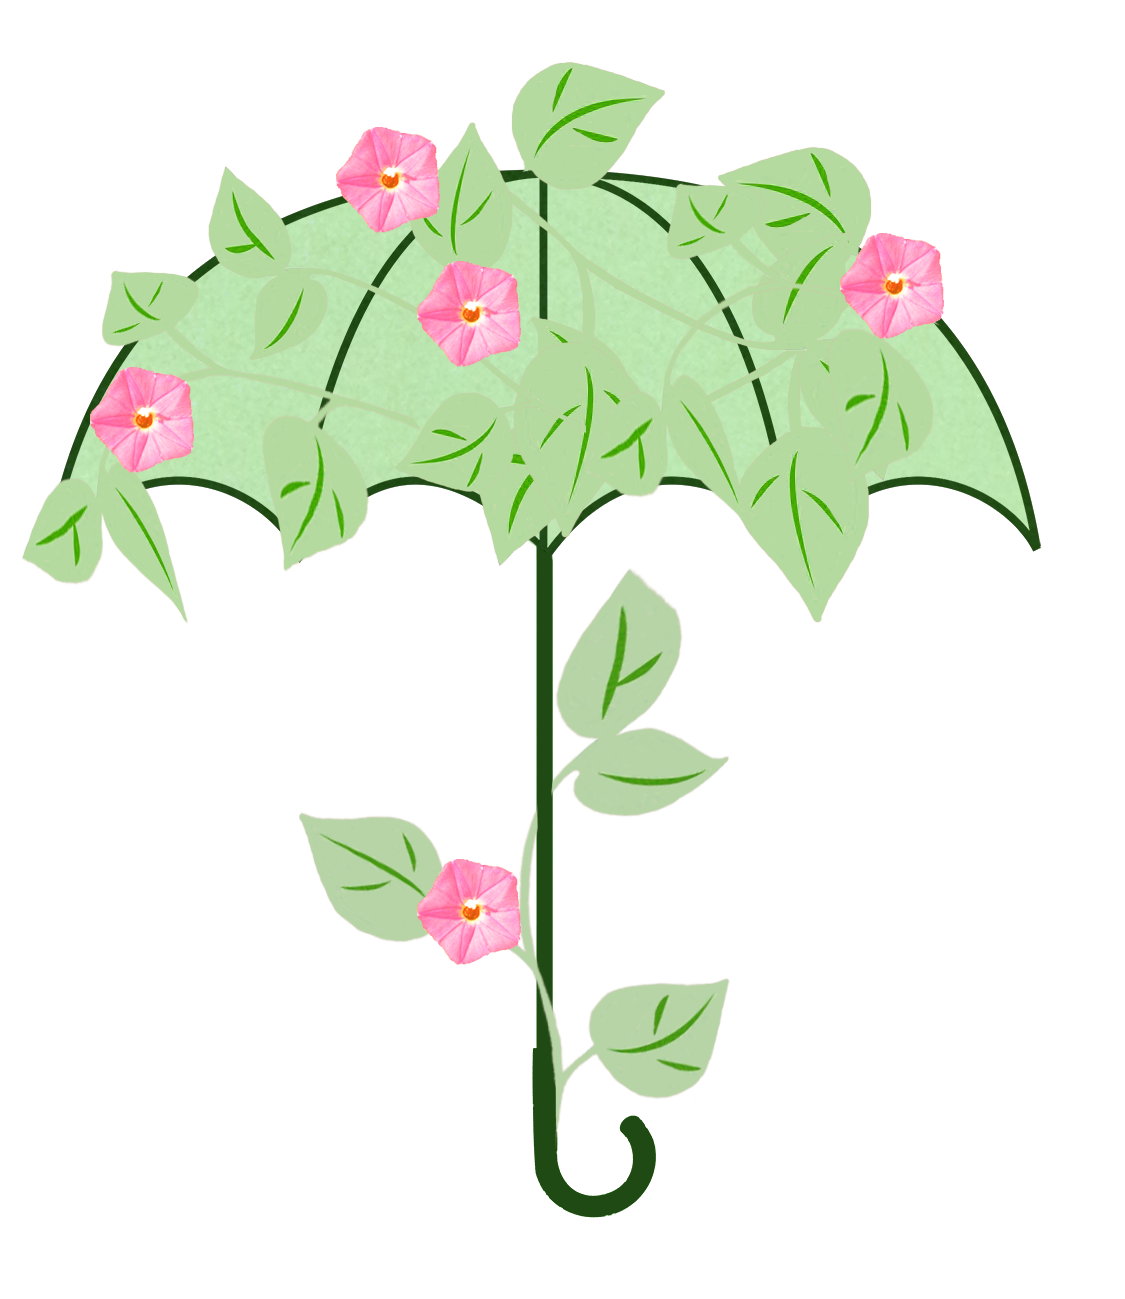 spring umbrella with leaves and flowers